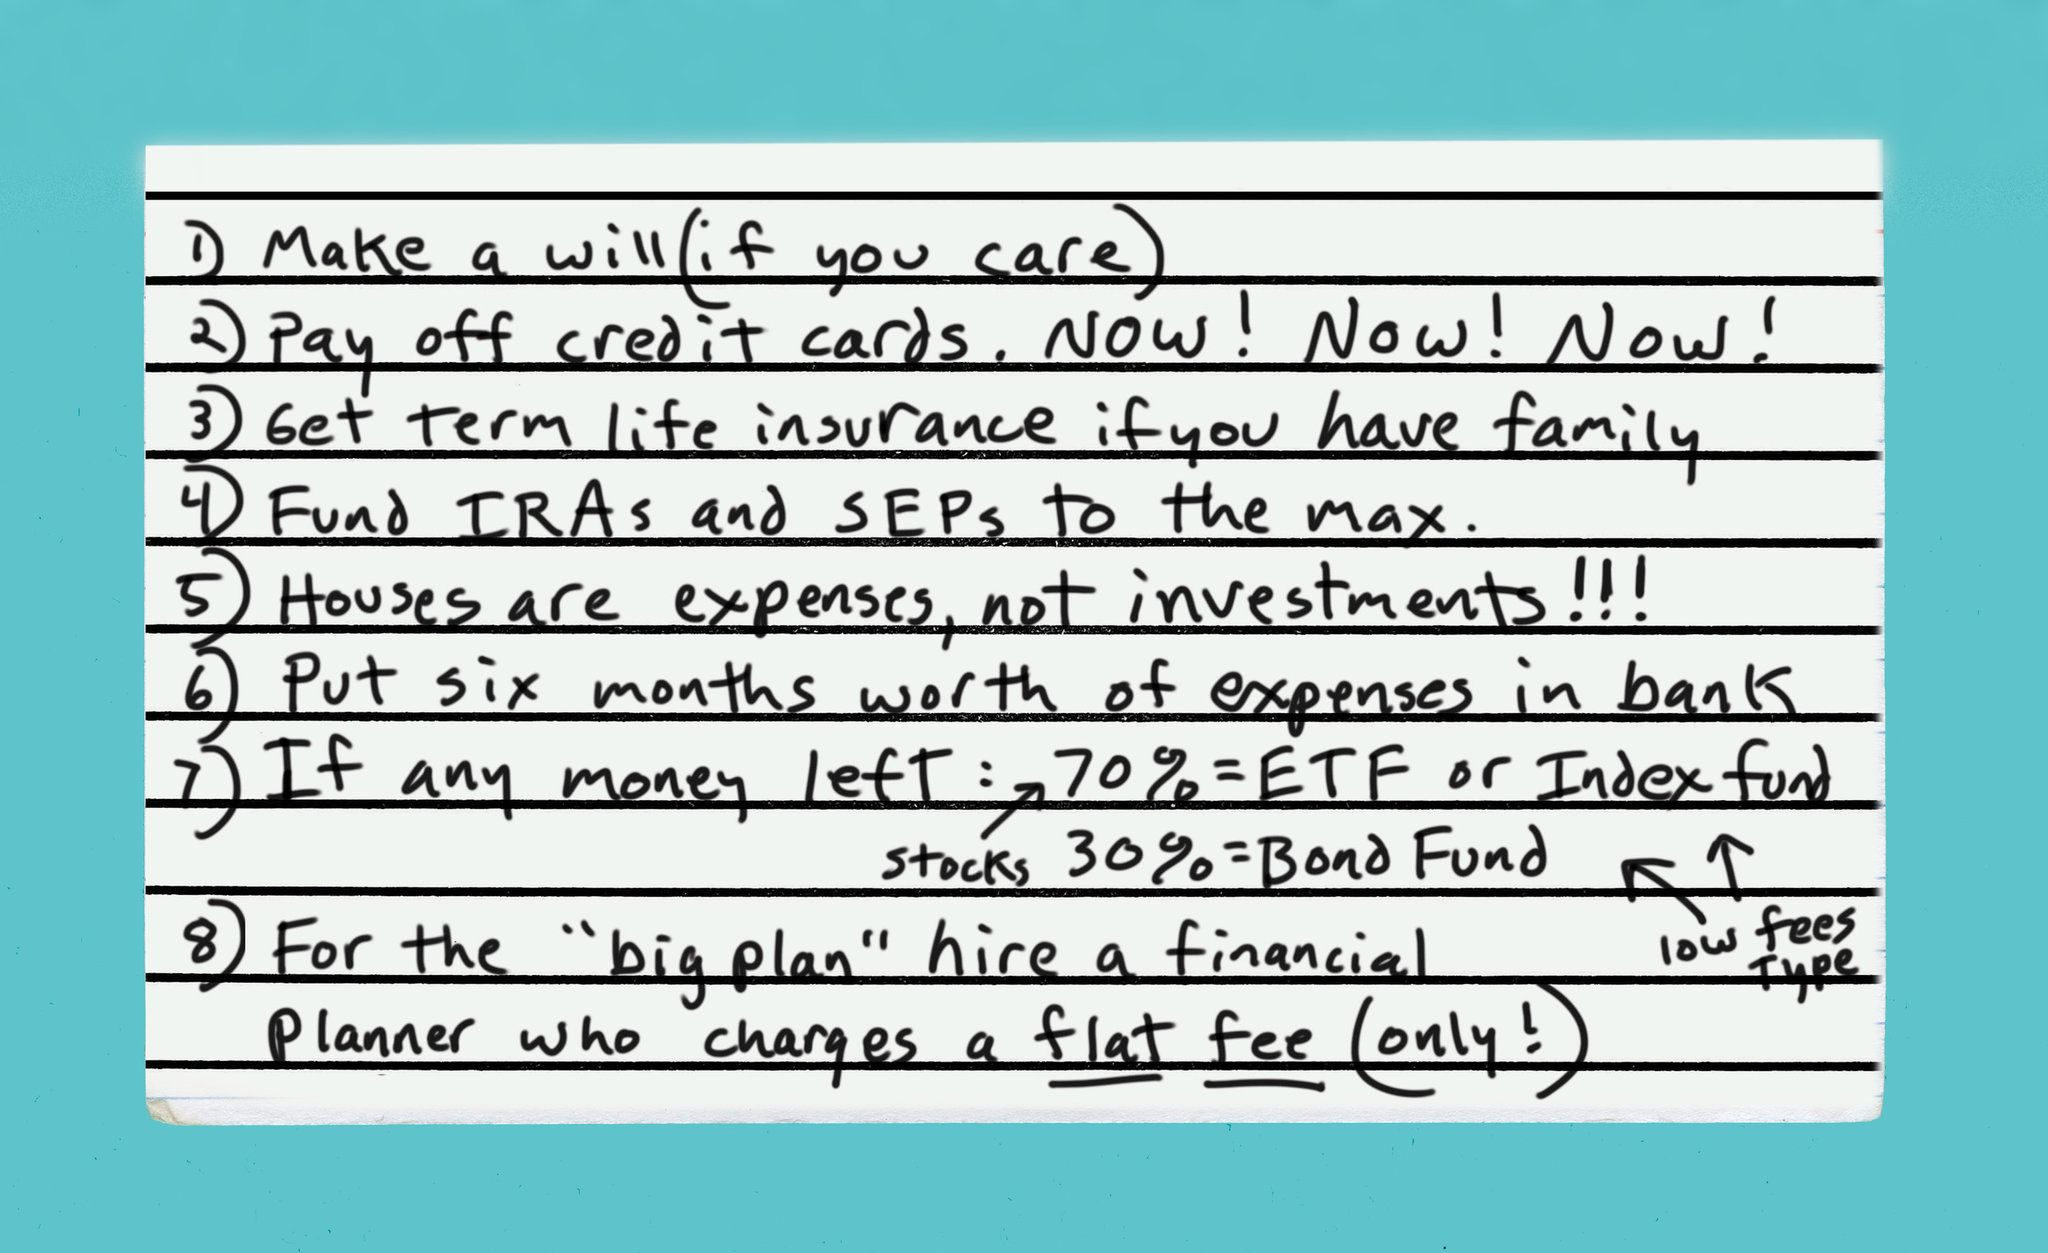 Index card investment advice 1 lot forex berapa rupiah harga